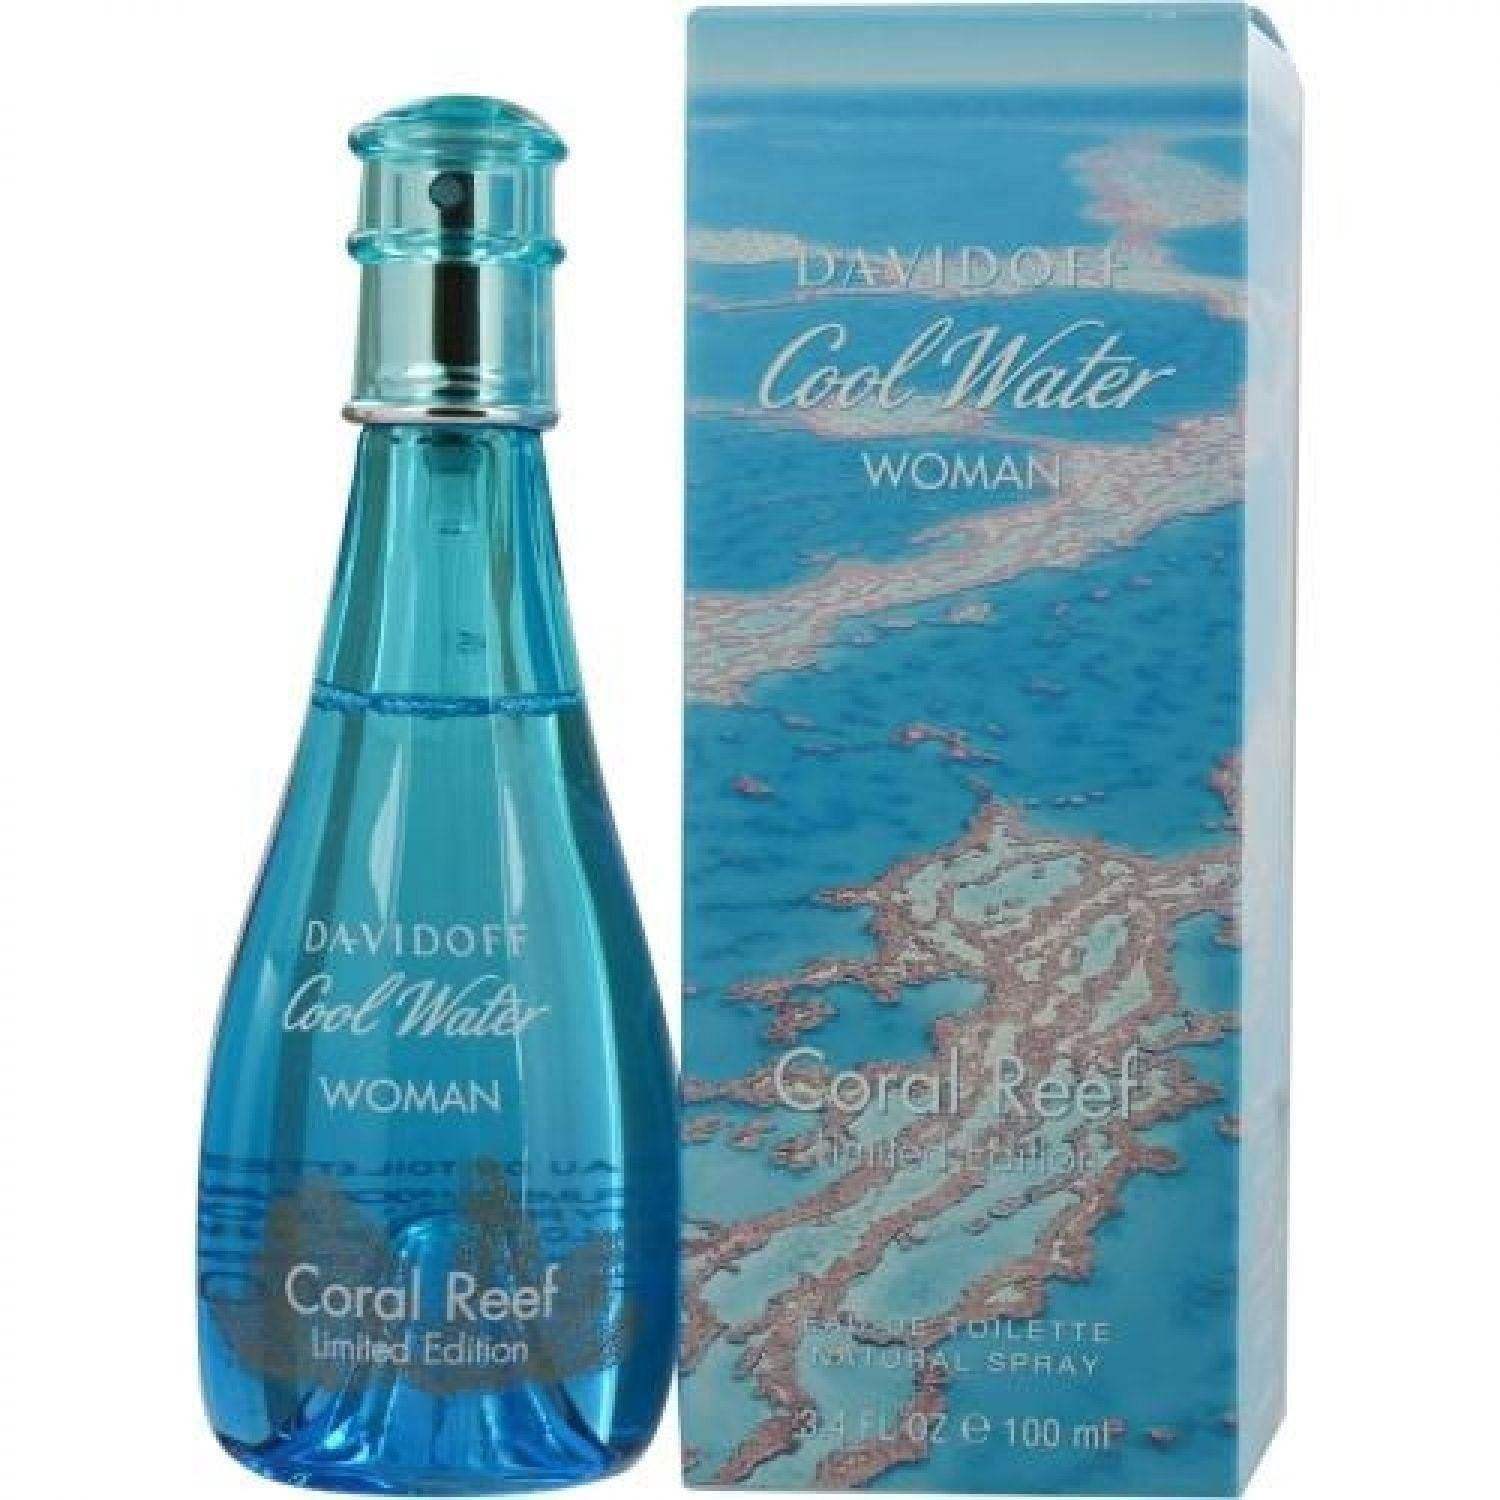 cool-water-coral-reef-limited-edition-davidoff-3-4-oz-edt-new-in-box